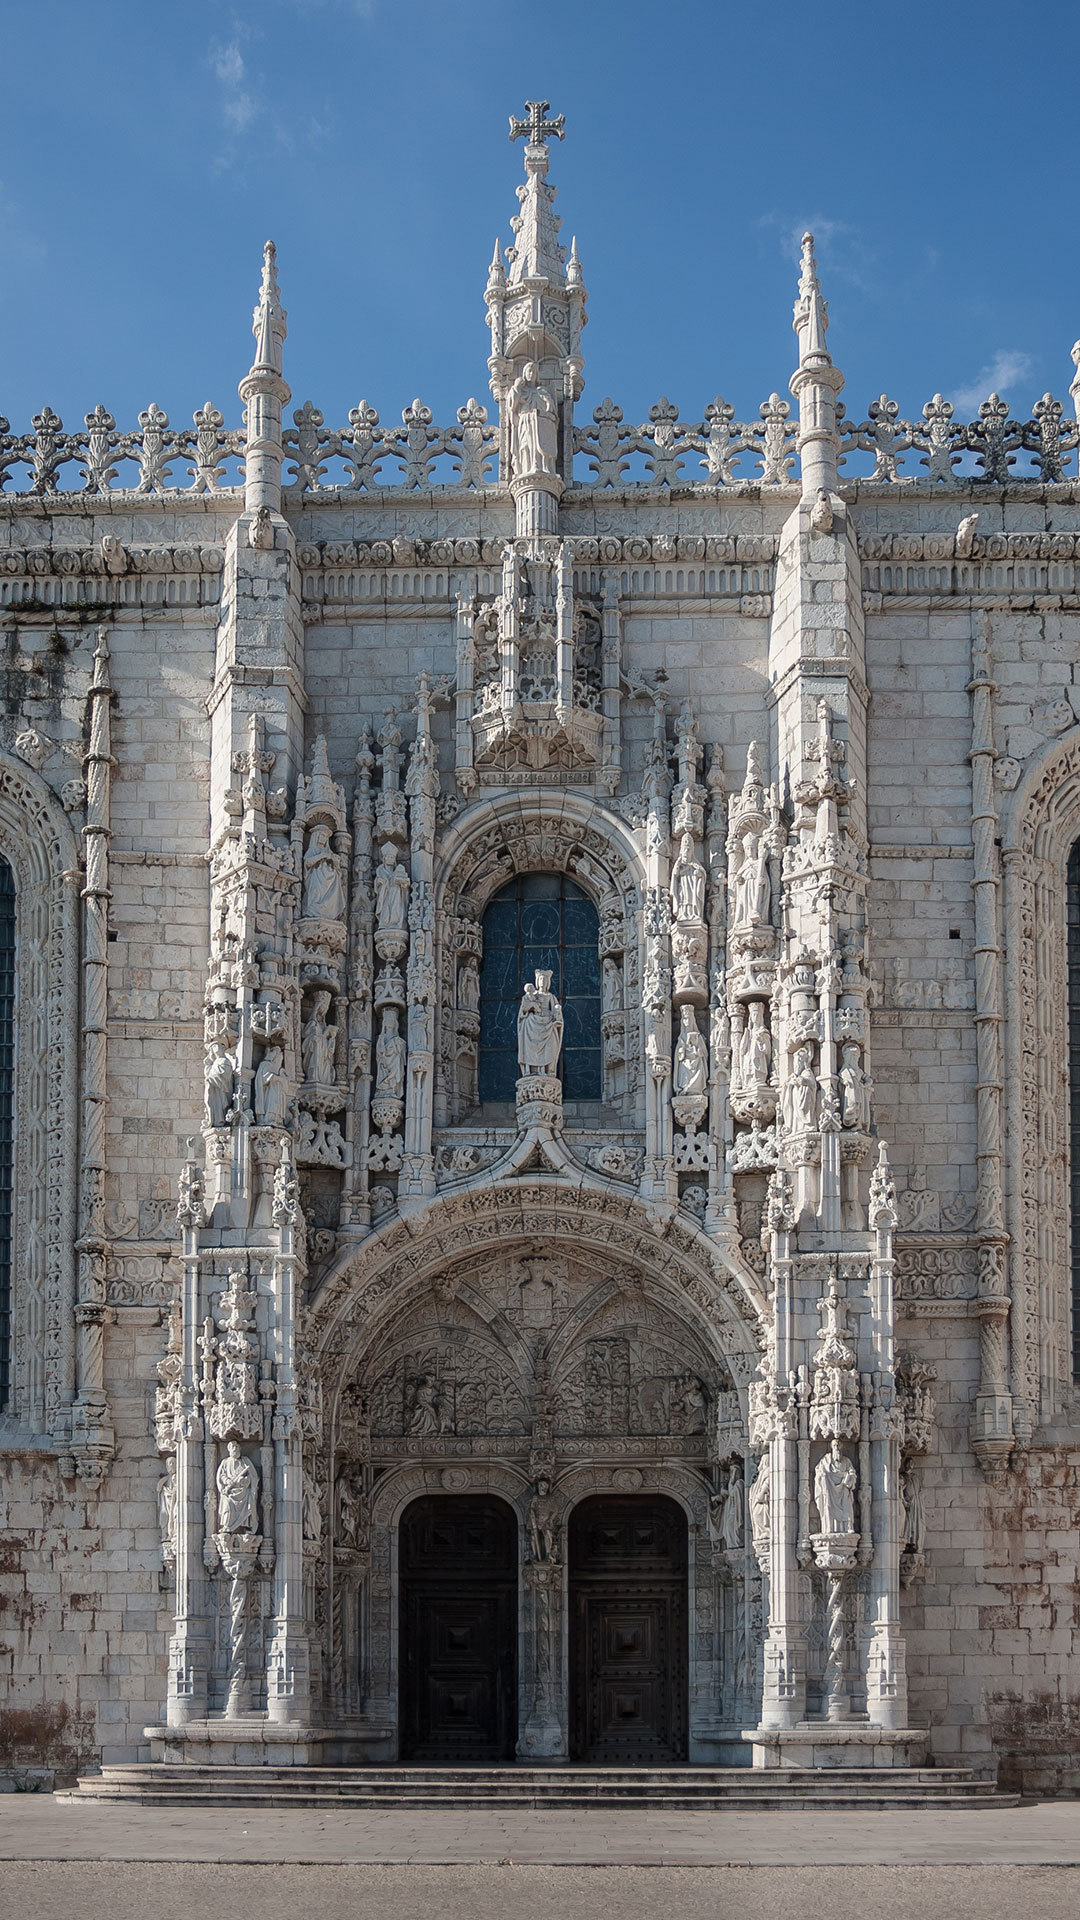 One of the elaborate doors at the Mosteiro dos Jeronimos in Lisbon (one of the Manueline style's most popular monuments)